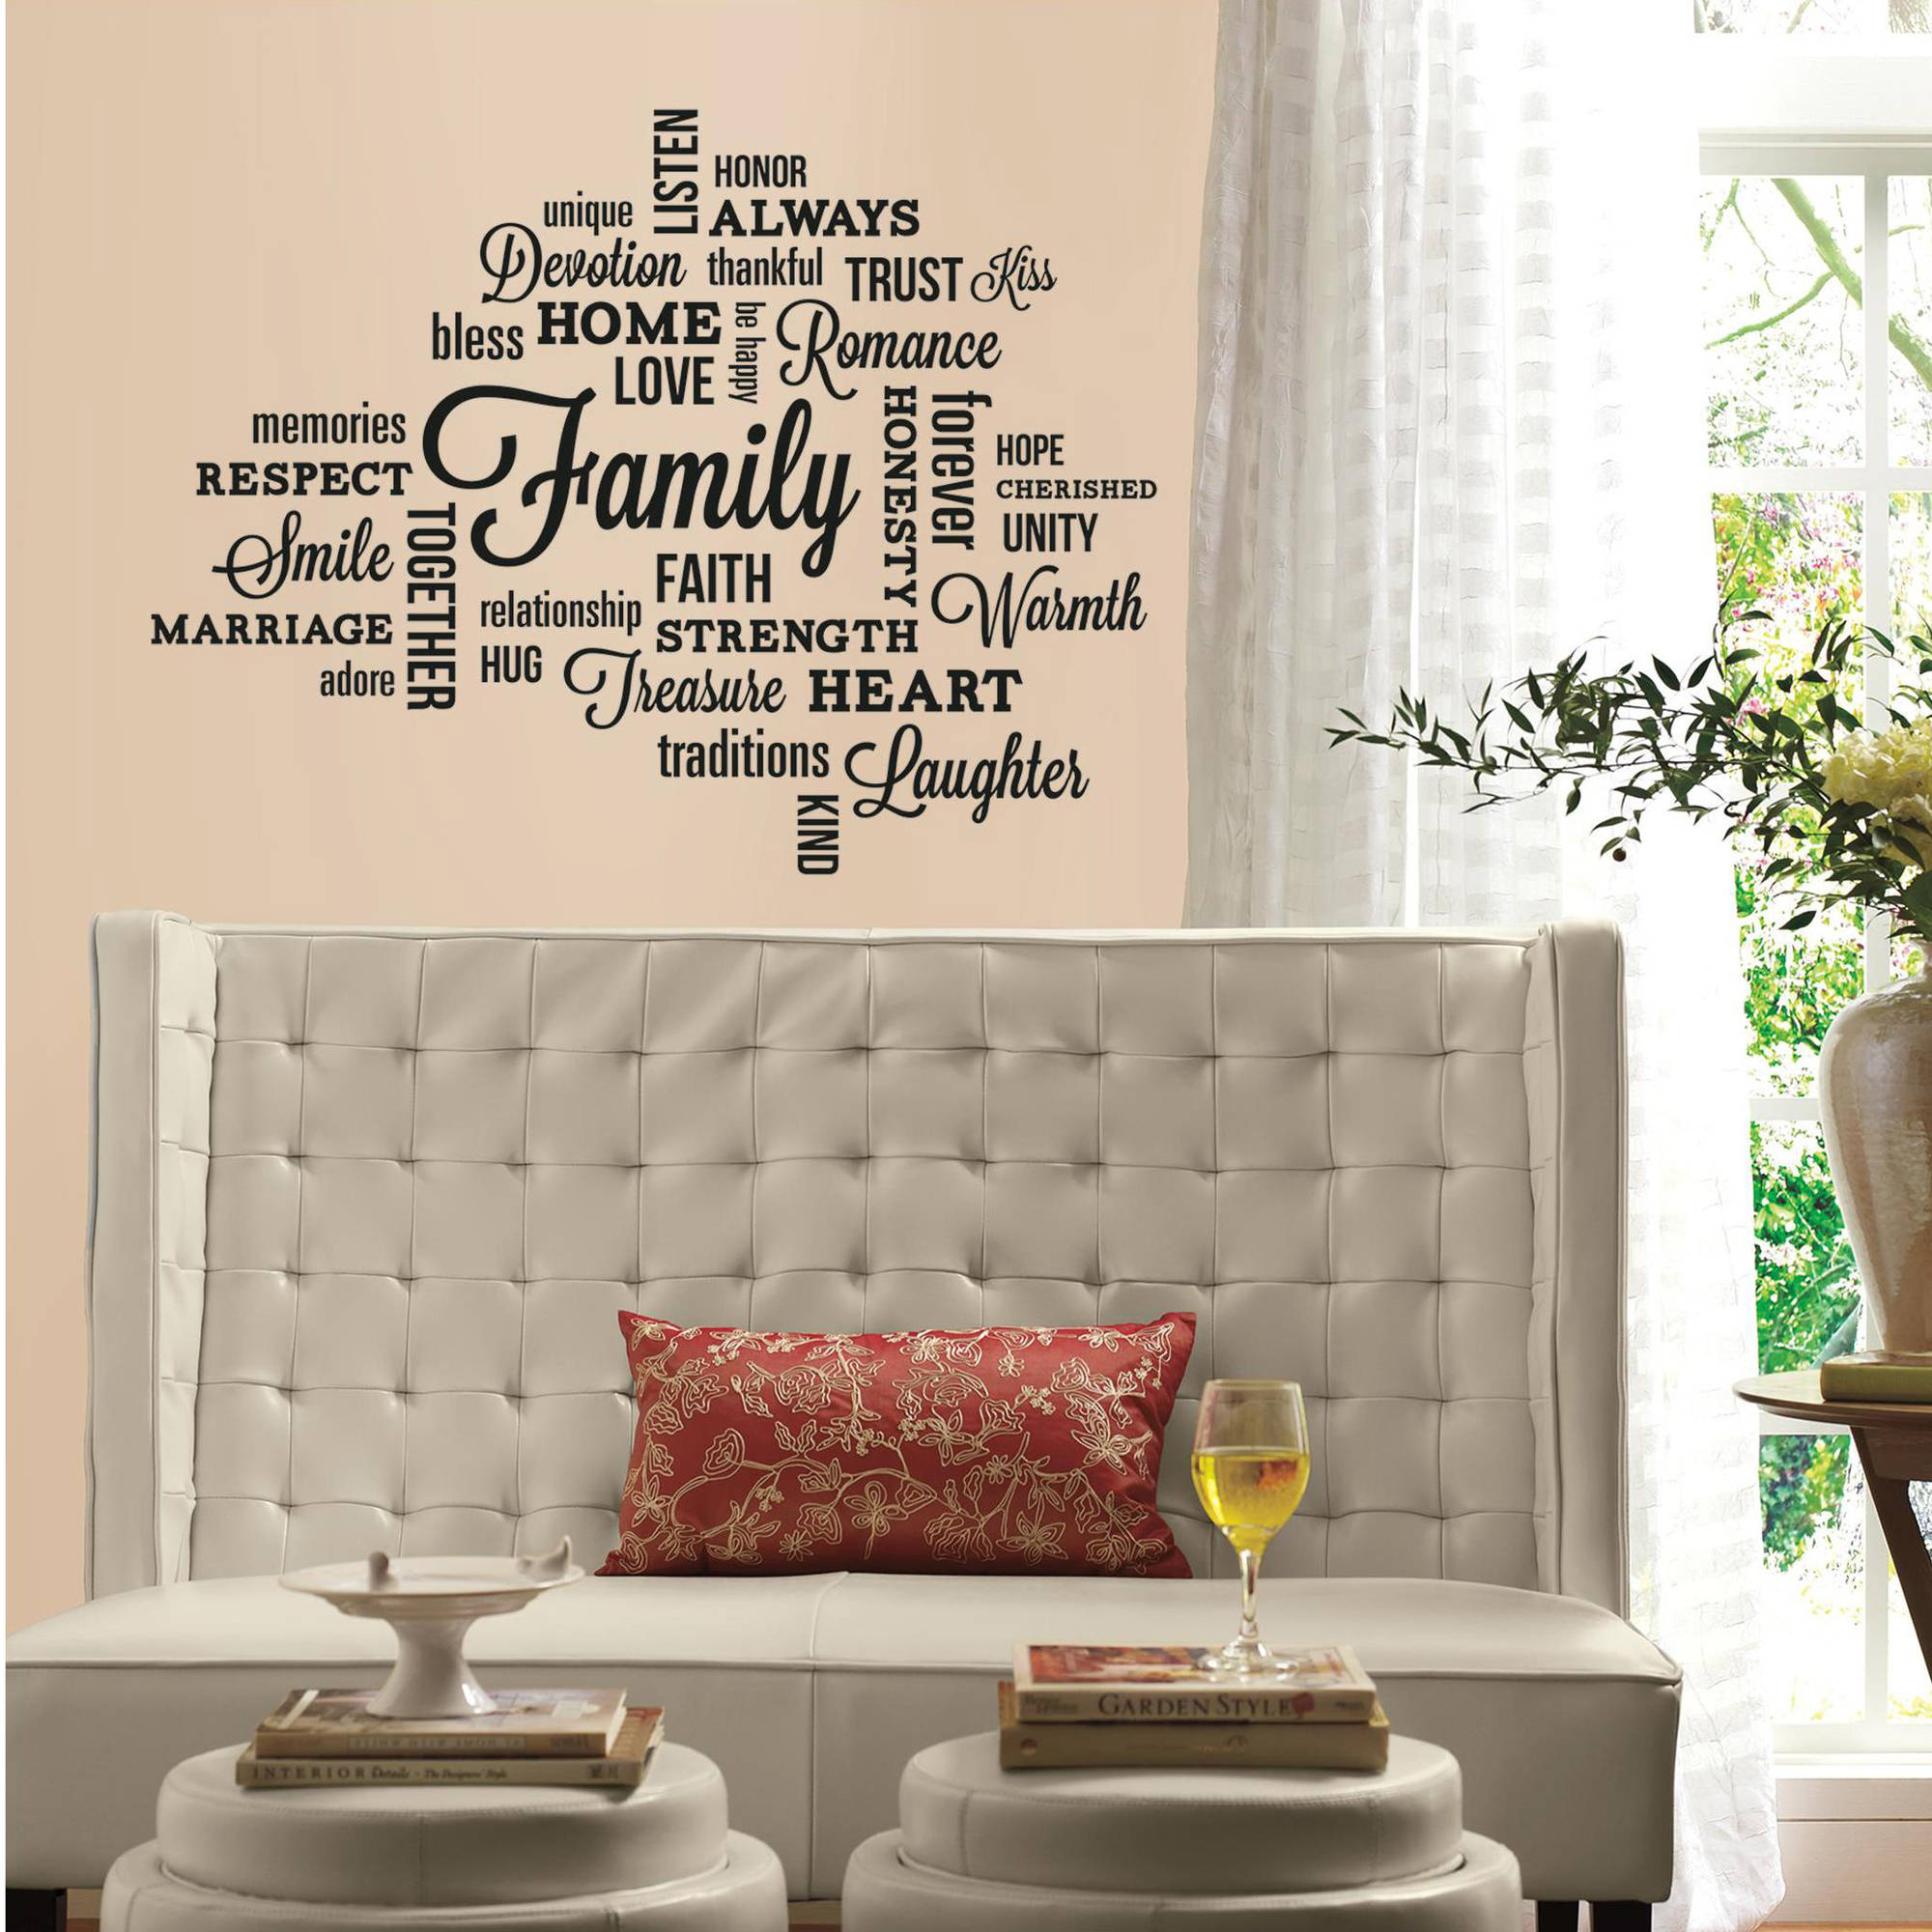 Family quote peel and stick wall decals walmart amipublicfo Choice Image